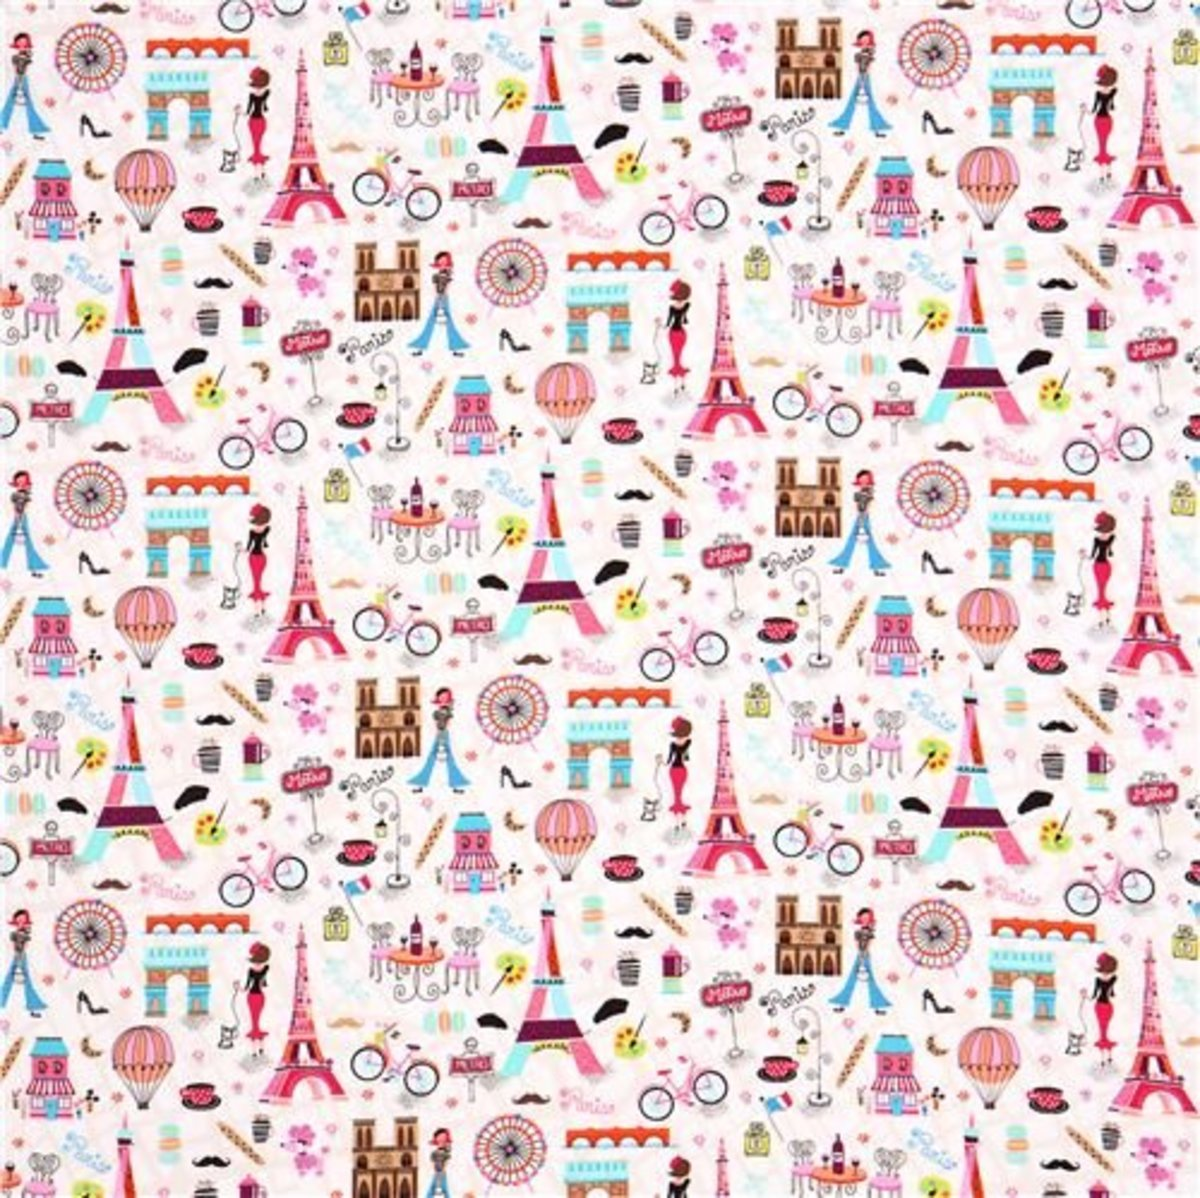 April in Paris Fabric by Timeless Treasures available on Amazon.com